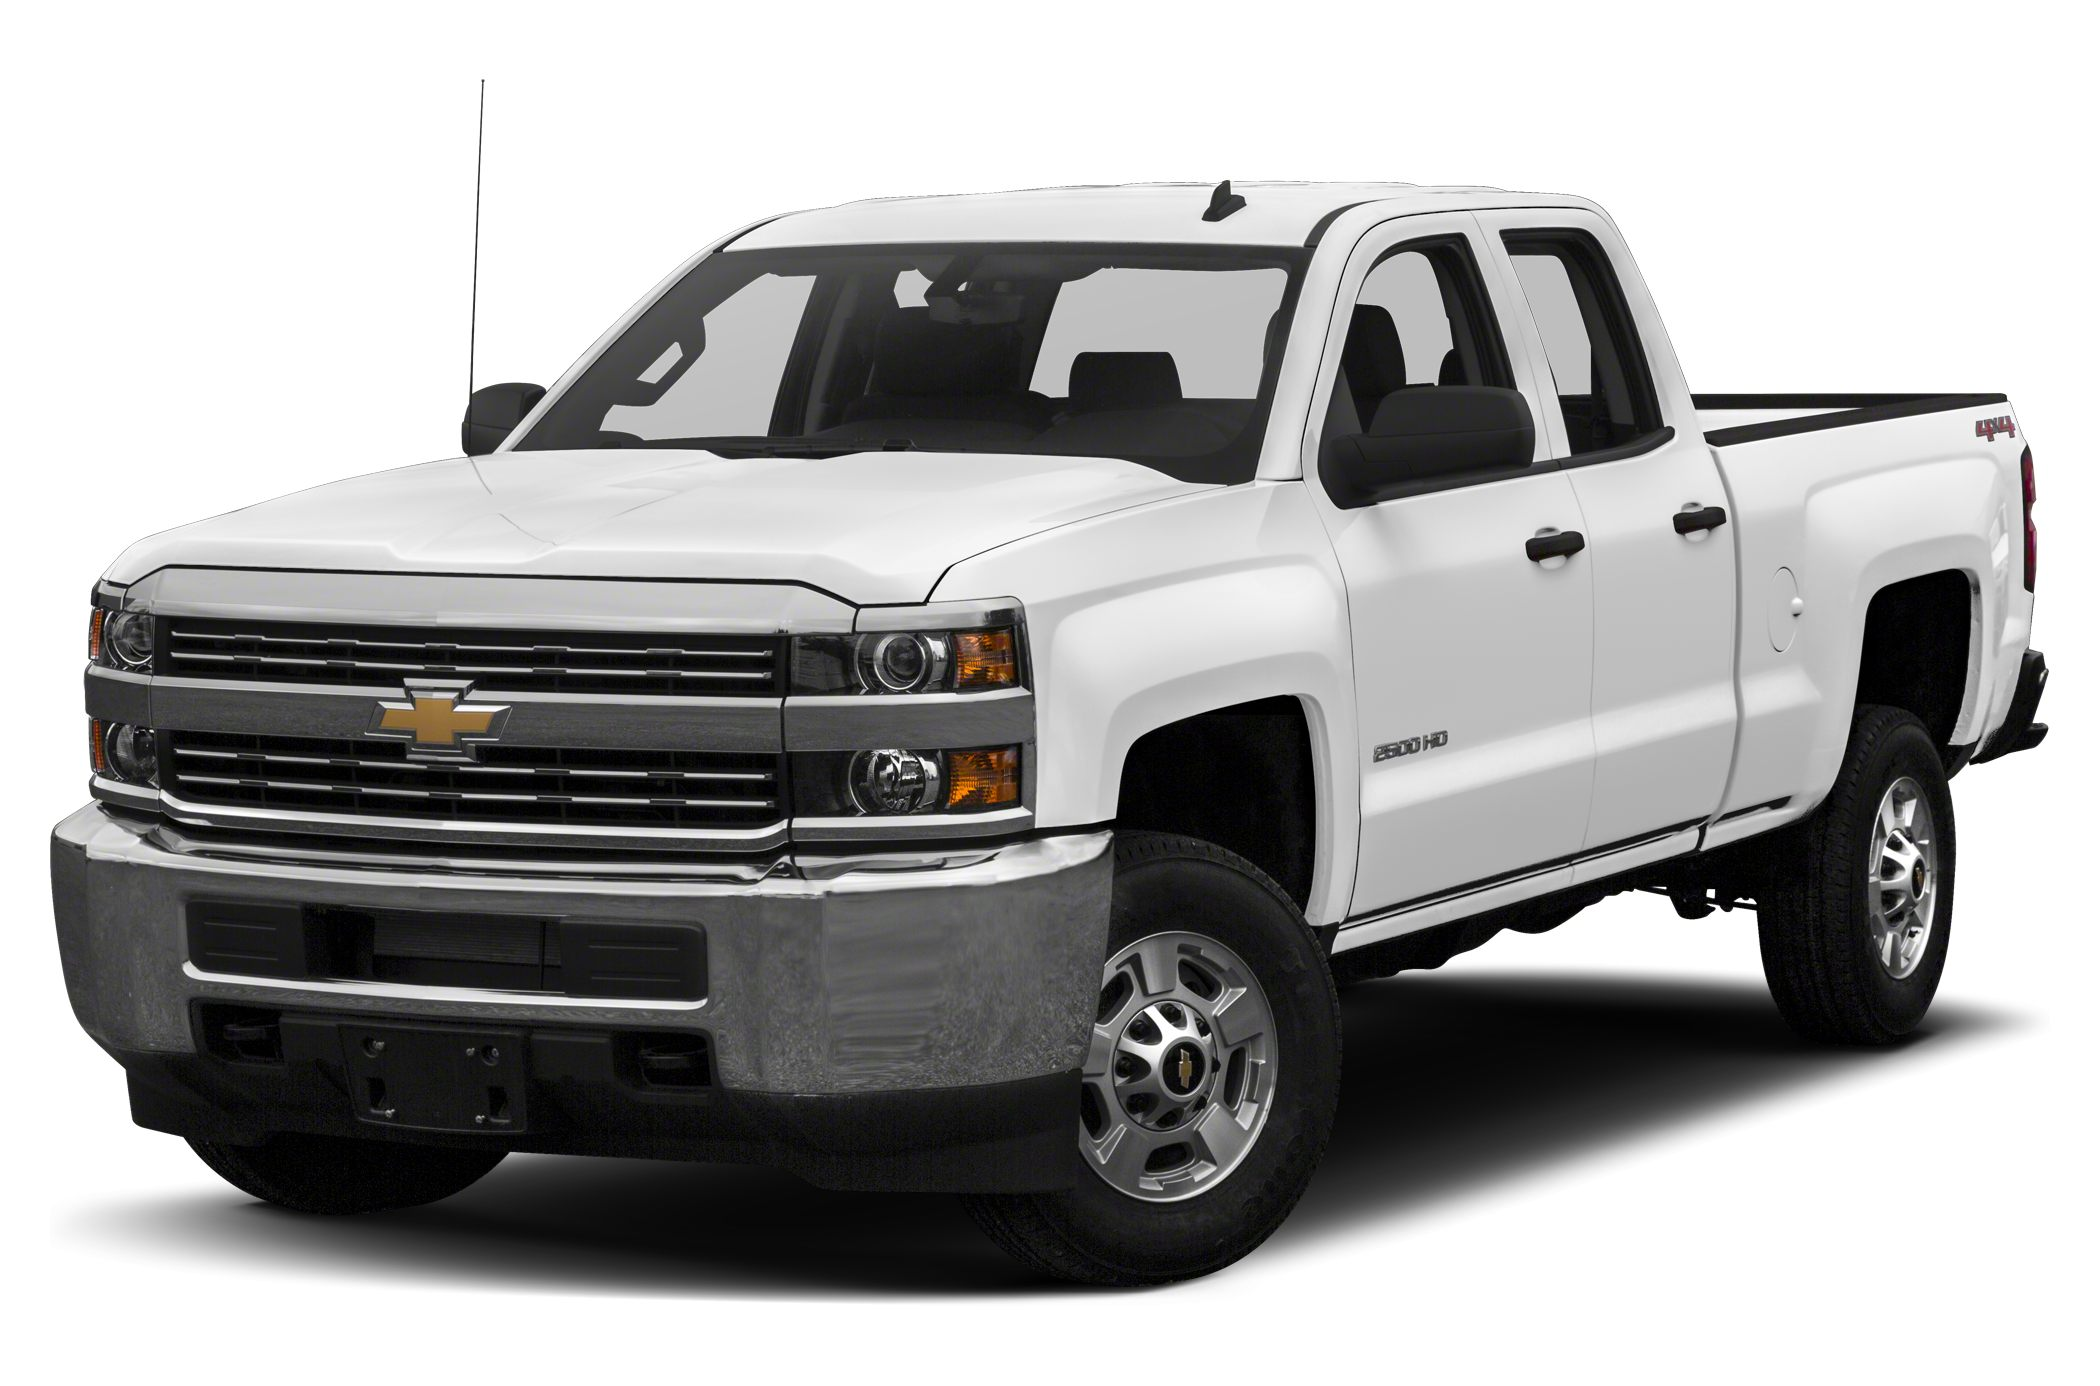 2015 Chevrolet Silverado 3500 LTZ Crew Cab Pickup for sale in Murphy for $63,565 with 10 miles